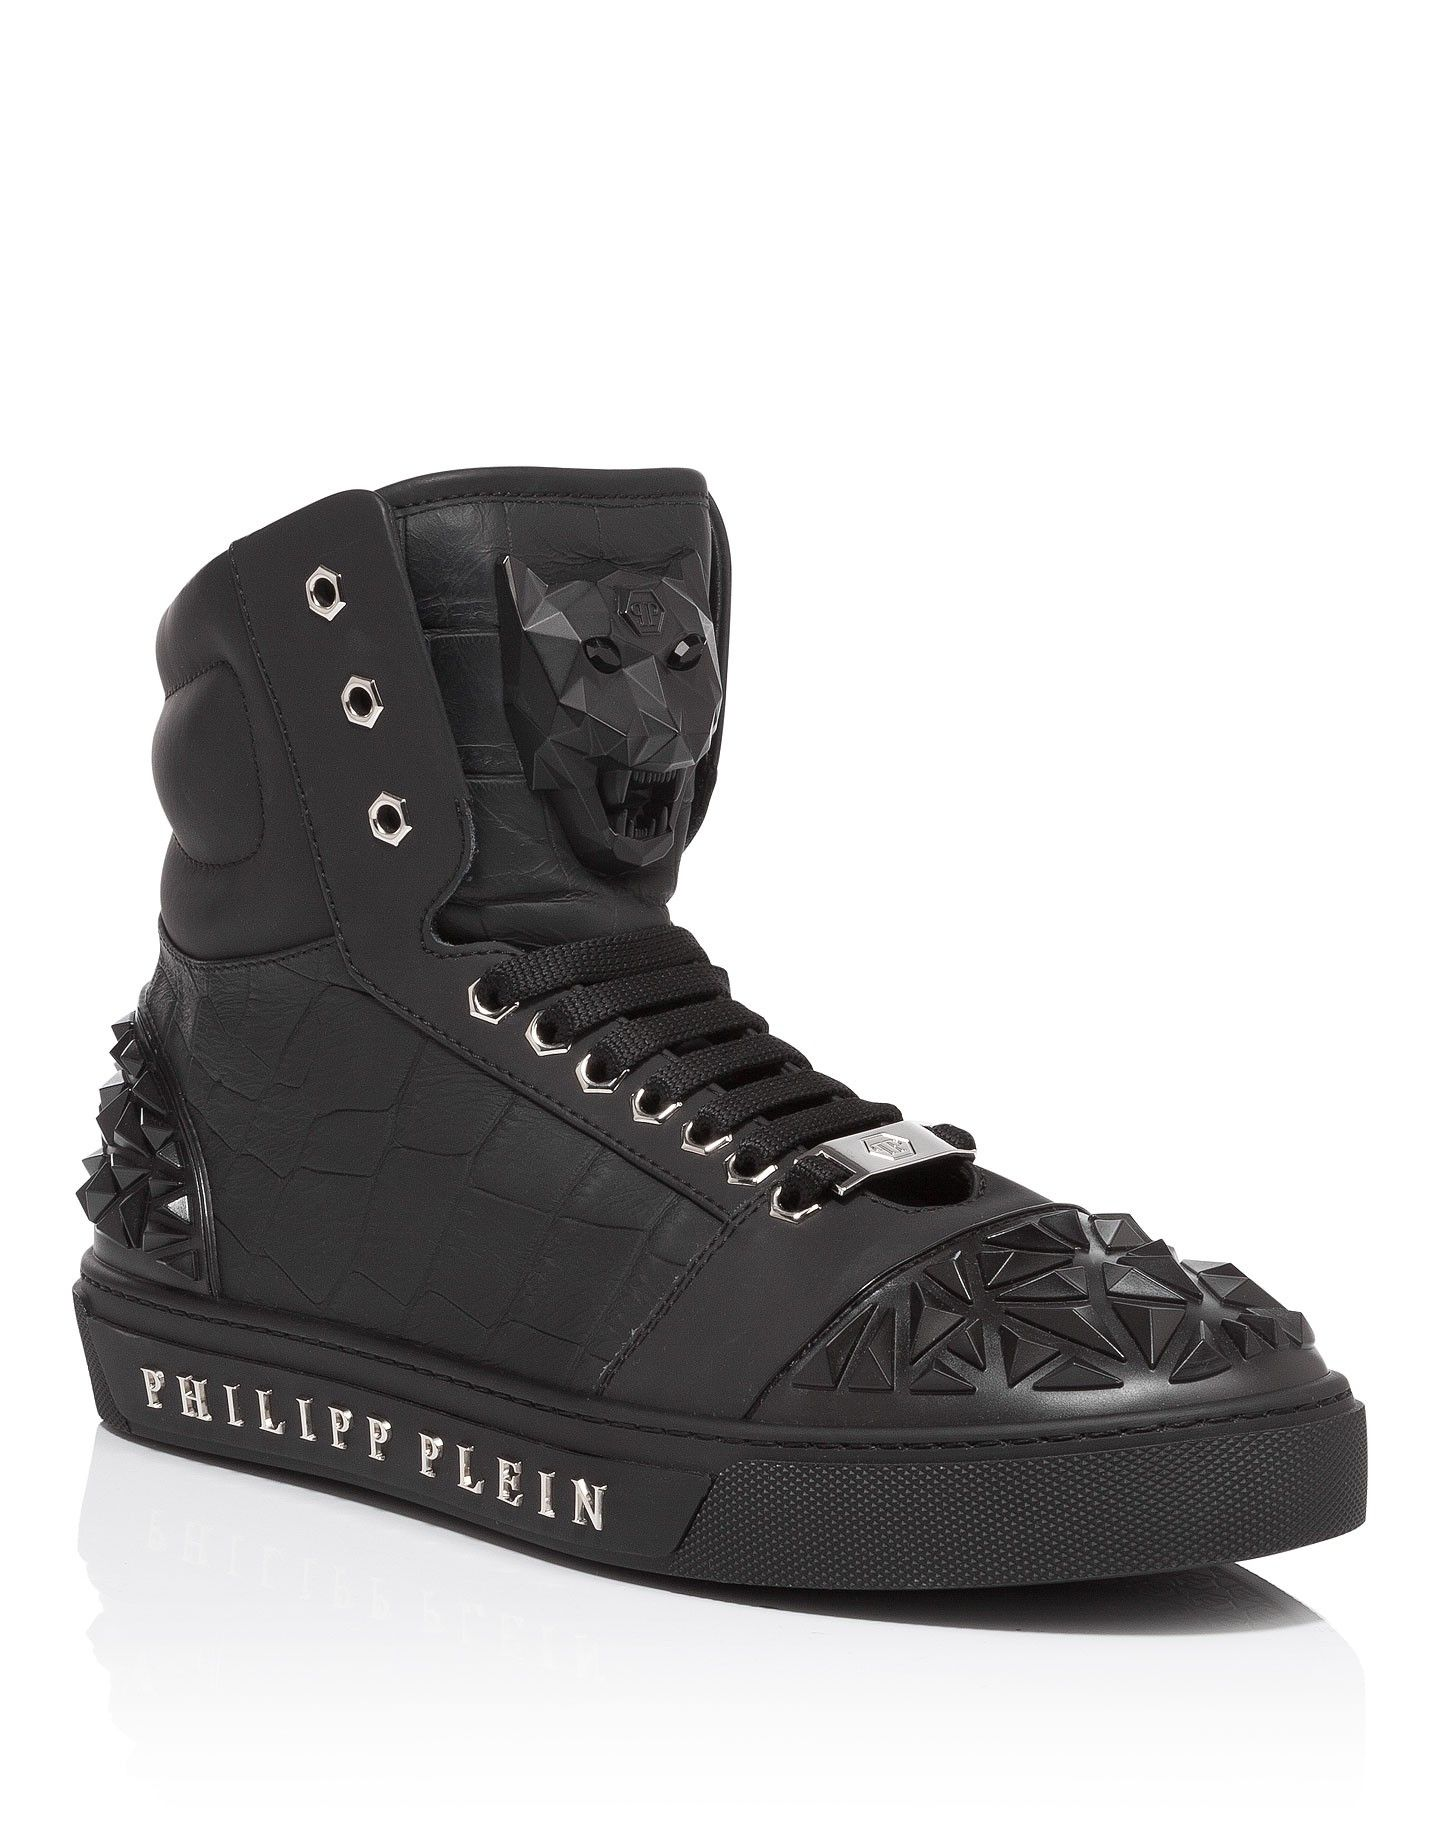 8afa2fd1eed PHILIPP PLEIN HIGH SNEAKERS